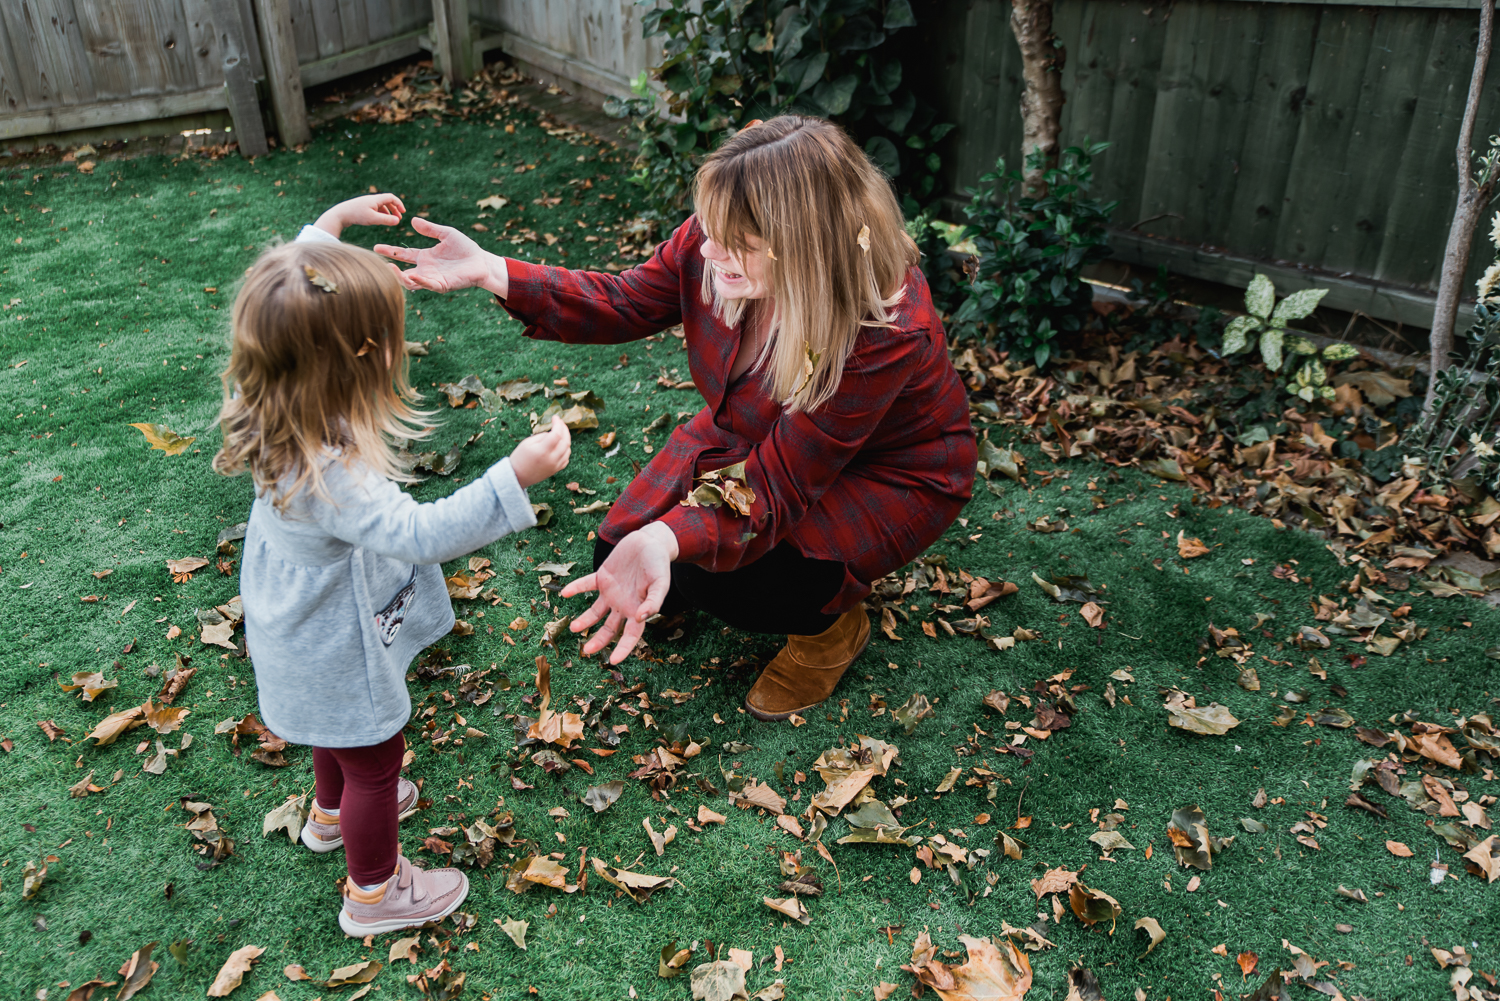 Mum and daughter dressed in red playing with the brown leaves in